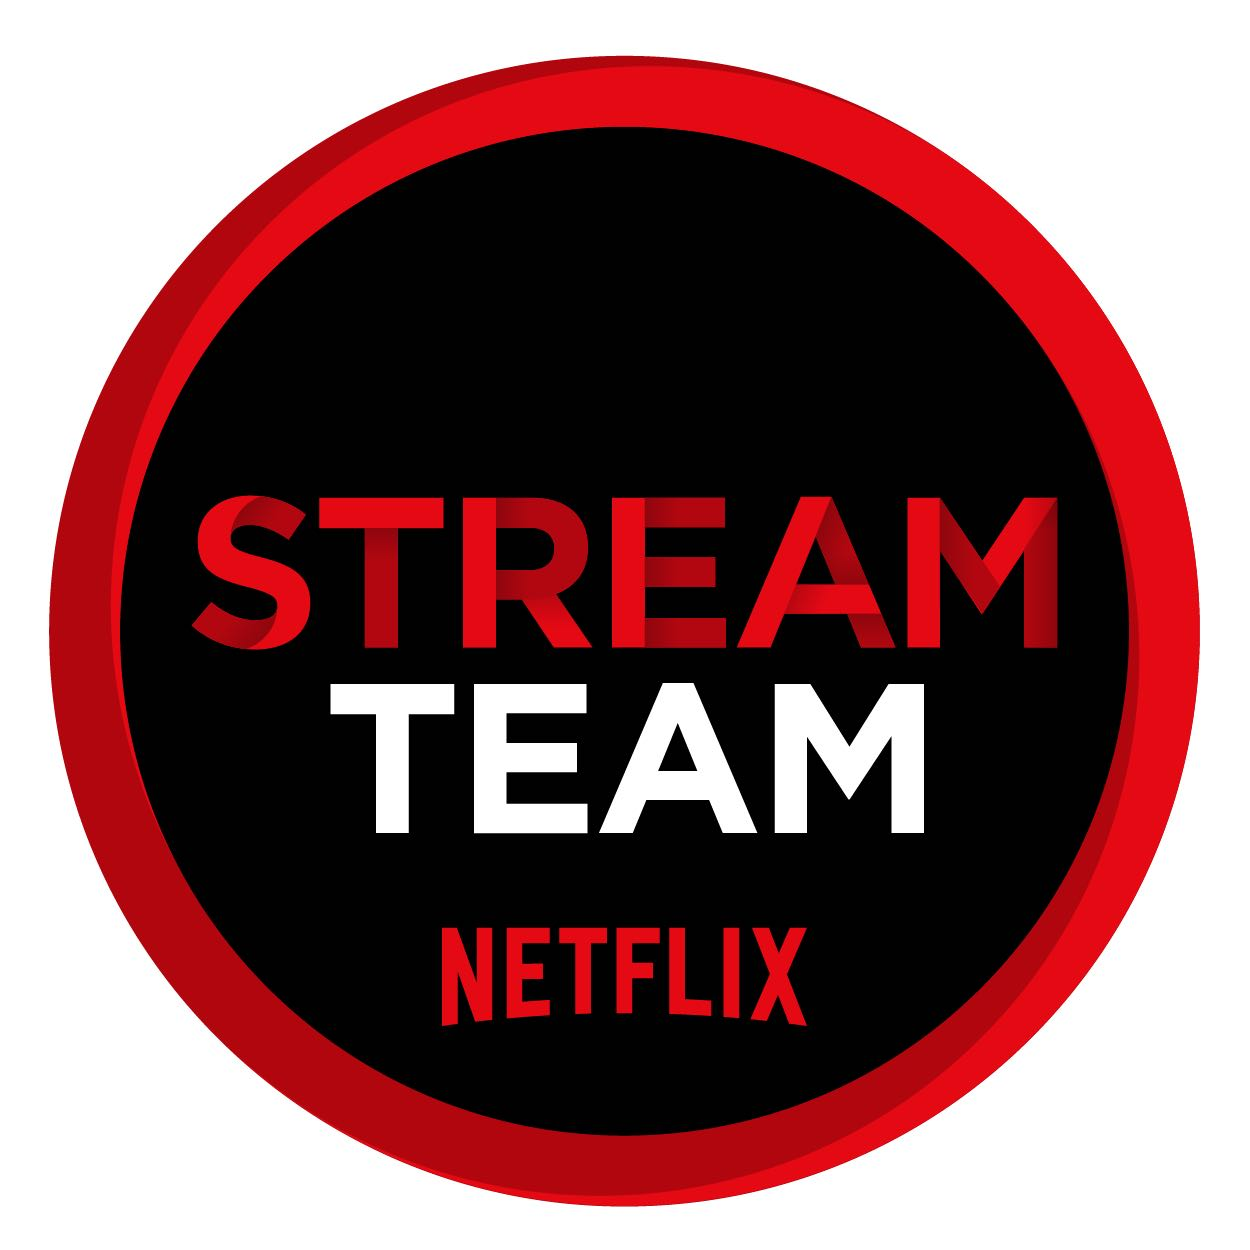 Netflix stream team Flavia Miranda Mães Brasileiras